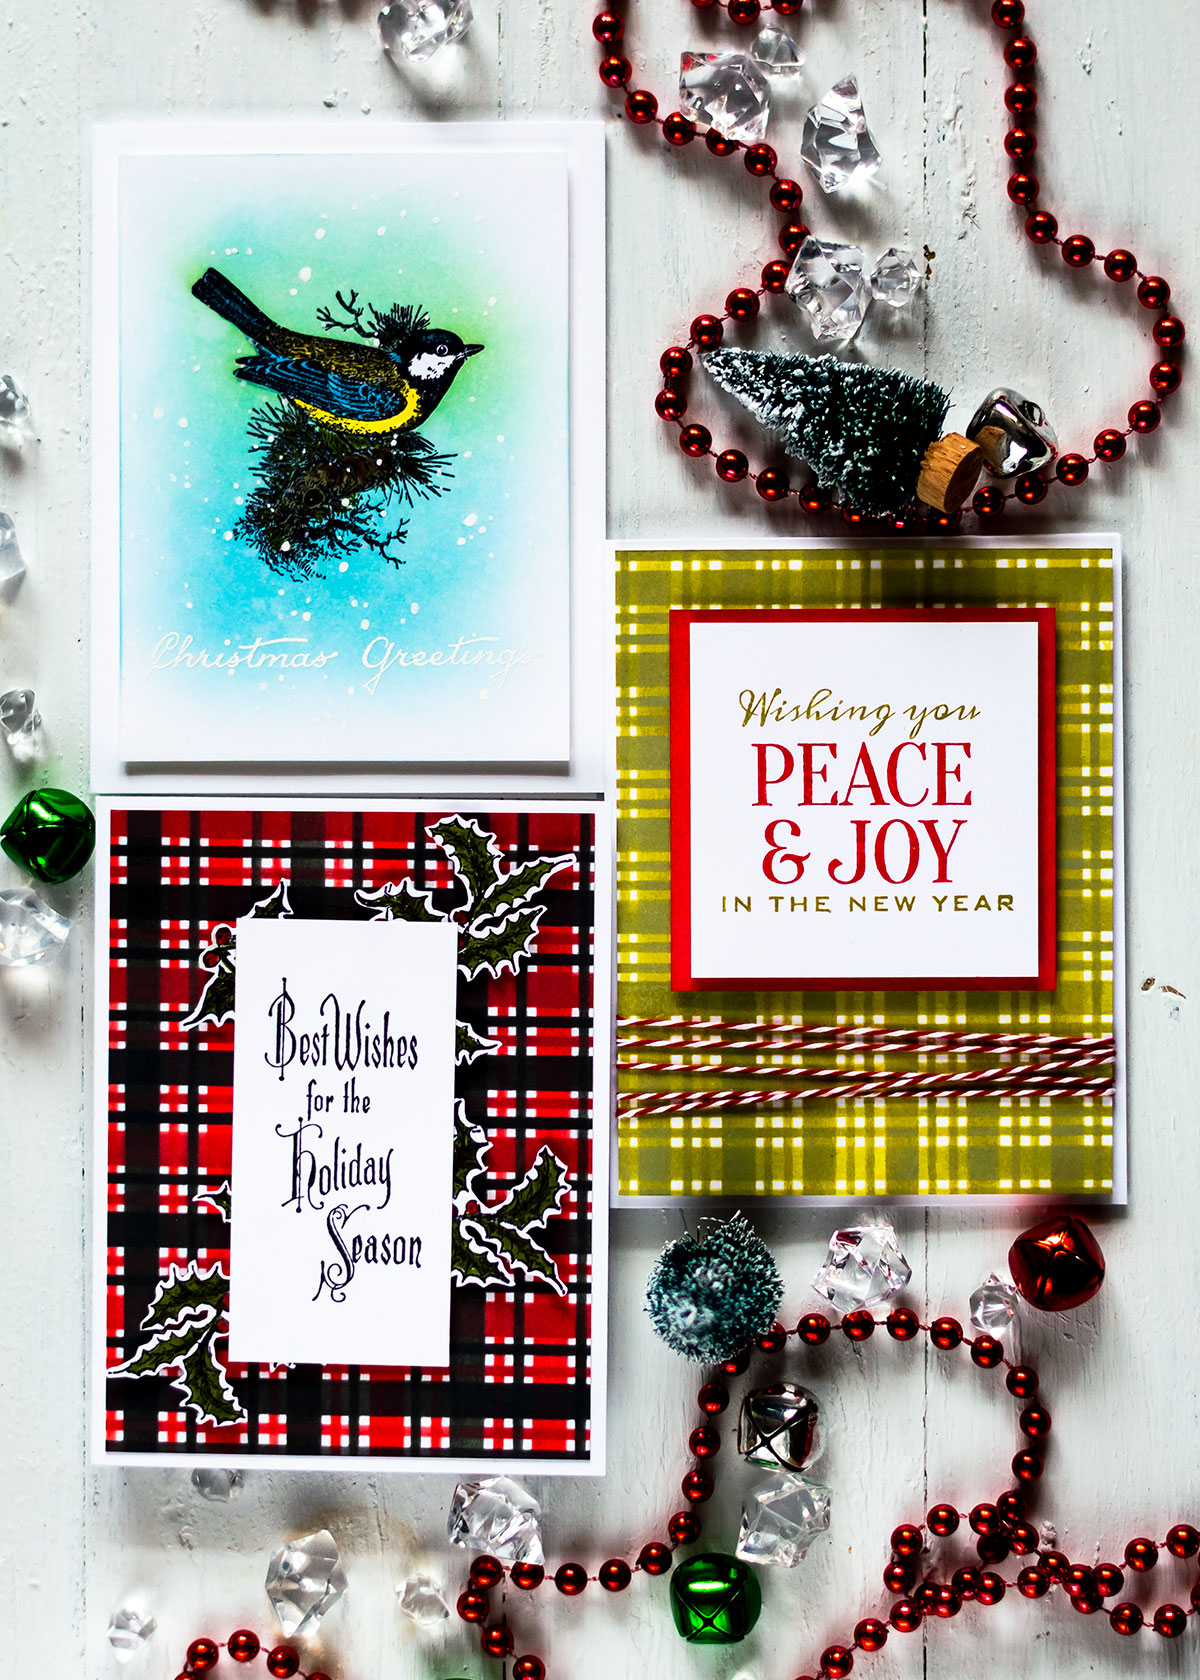 Simon Says Stamp STAMPtember Tim Holtz exclusive. Cards by Svitlana Shayevich